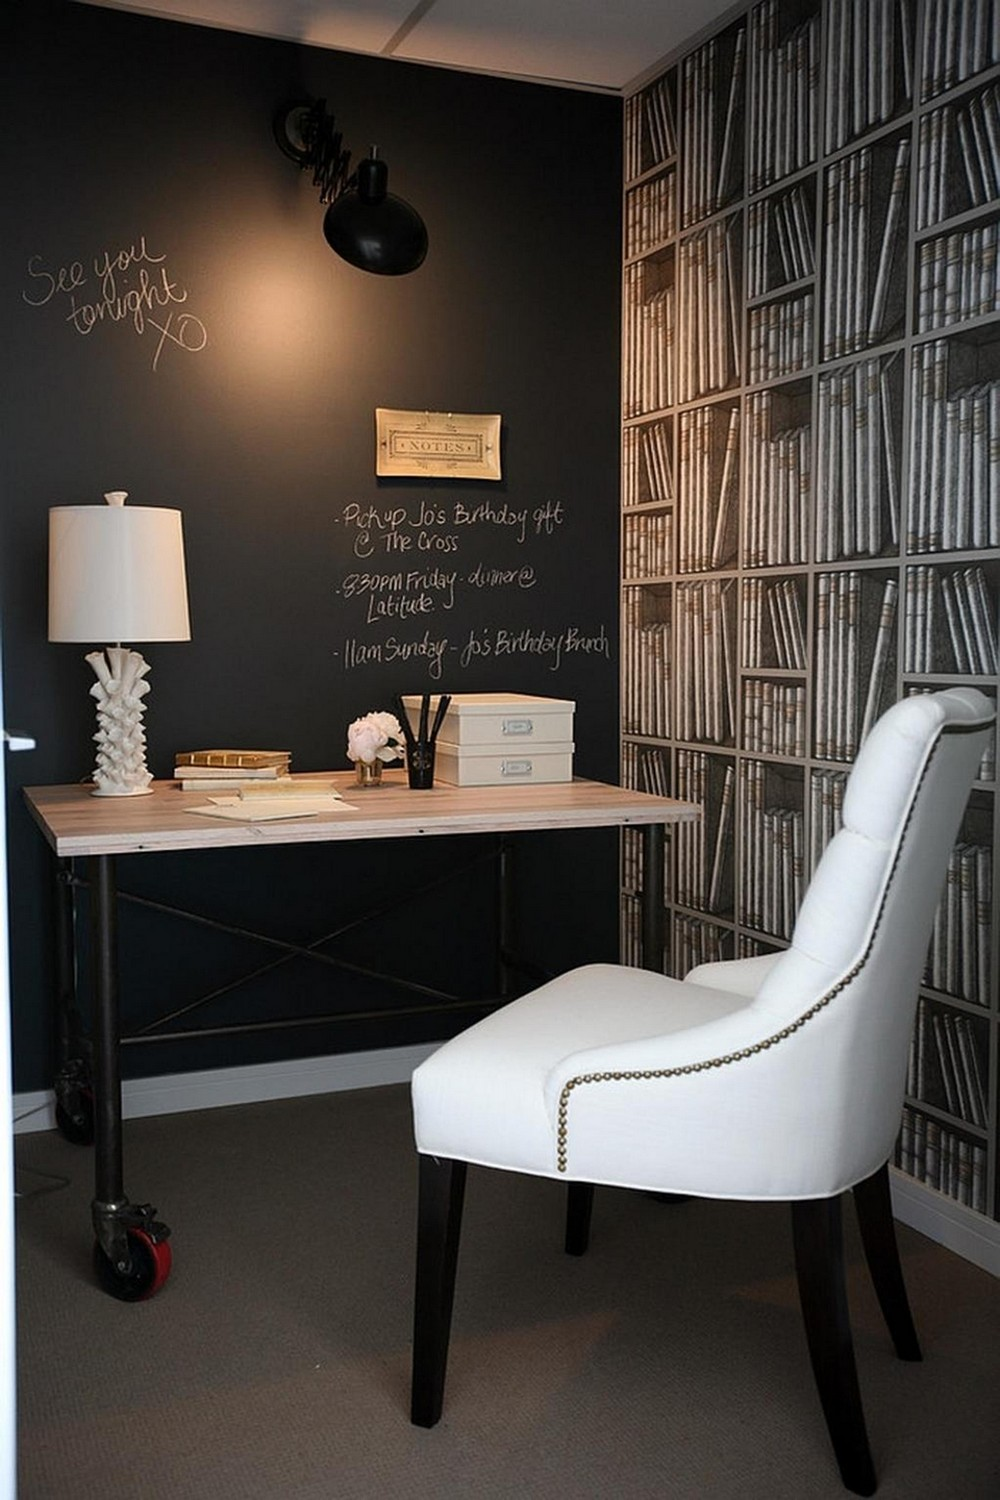 18 Awe-Inspiring Home Office Designs full of Colors and Textures 15 home office designs 17 Awe-Inspiring Home Office Designs full of Colors and Textures 18 Awe Inspiring Home Office Designs full of Colors and Textures 15